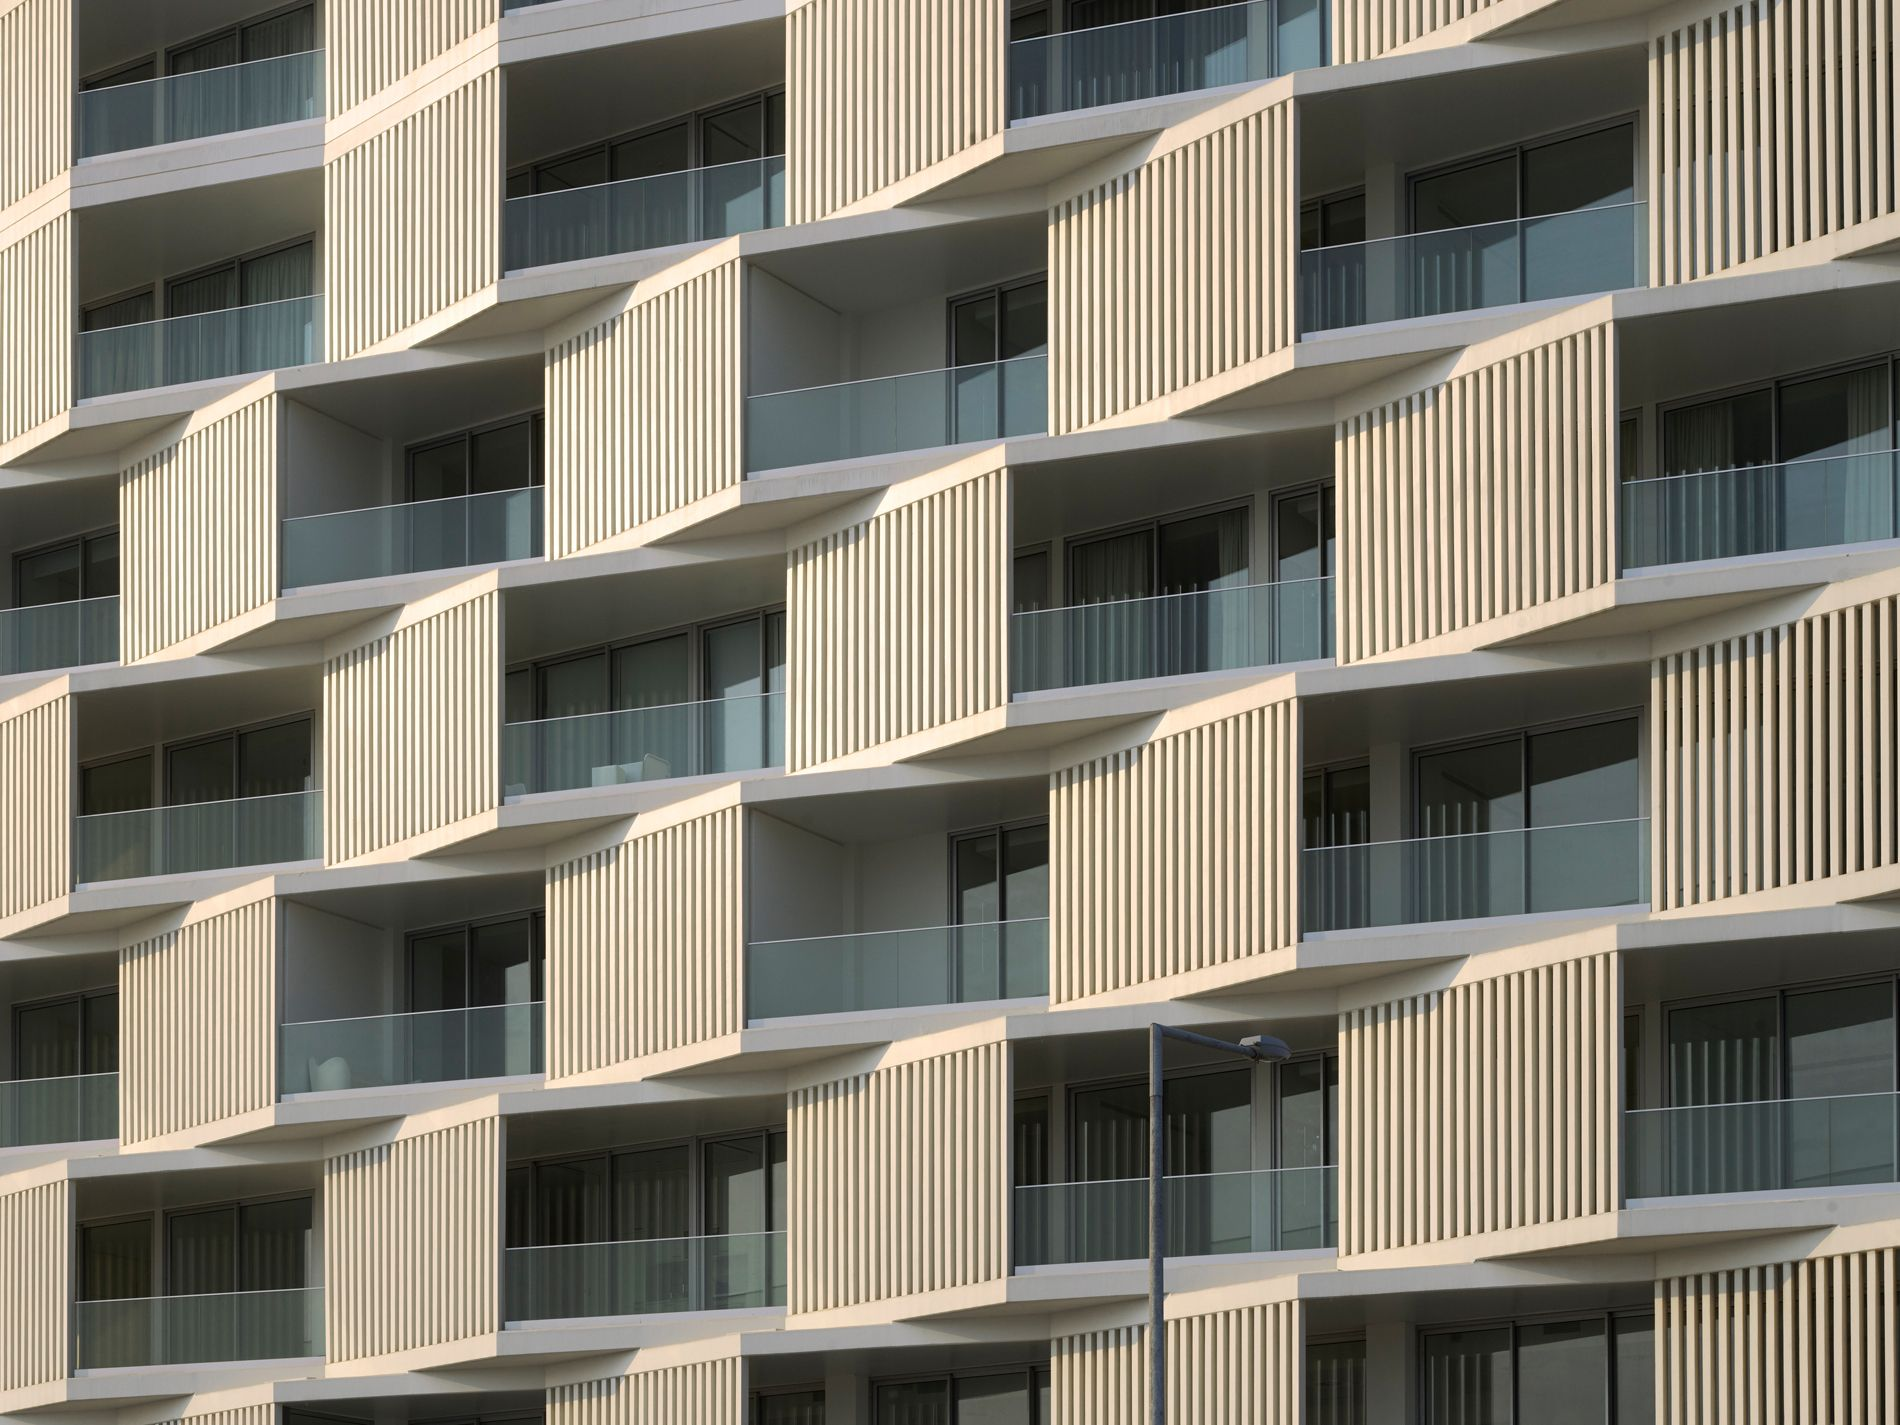 17afb0e575e895d99f0e184b9a7f5901 522 best balconies images on pinterest balconies, architecture  at gsmportal.co